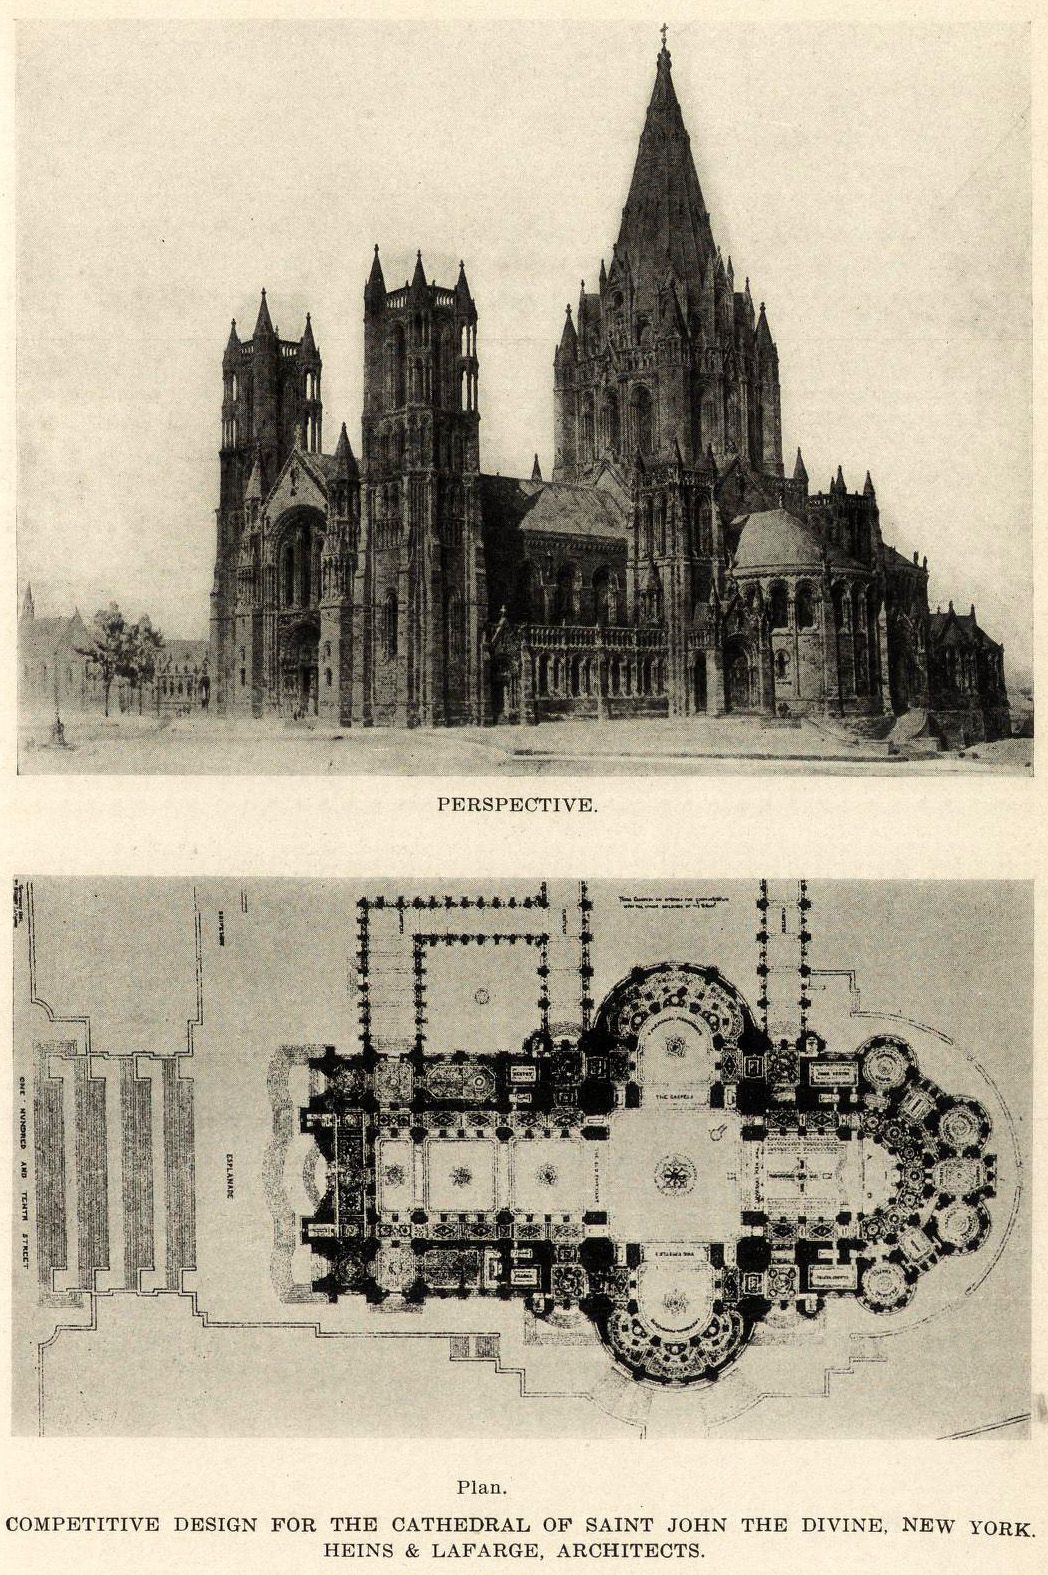 Competition Design for the Cathedral of St. John the Divine, New York City   HEINS & LAFARGE, ARCHITECTS  ARCHI/MAPS : Photo